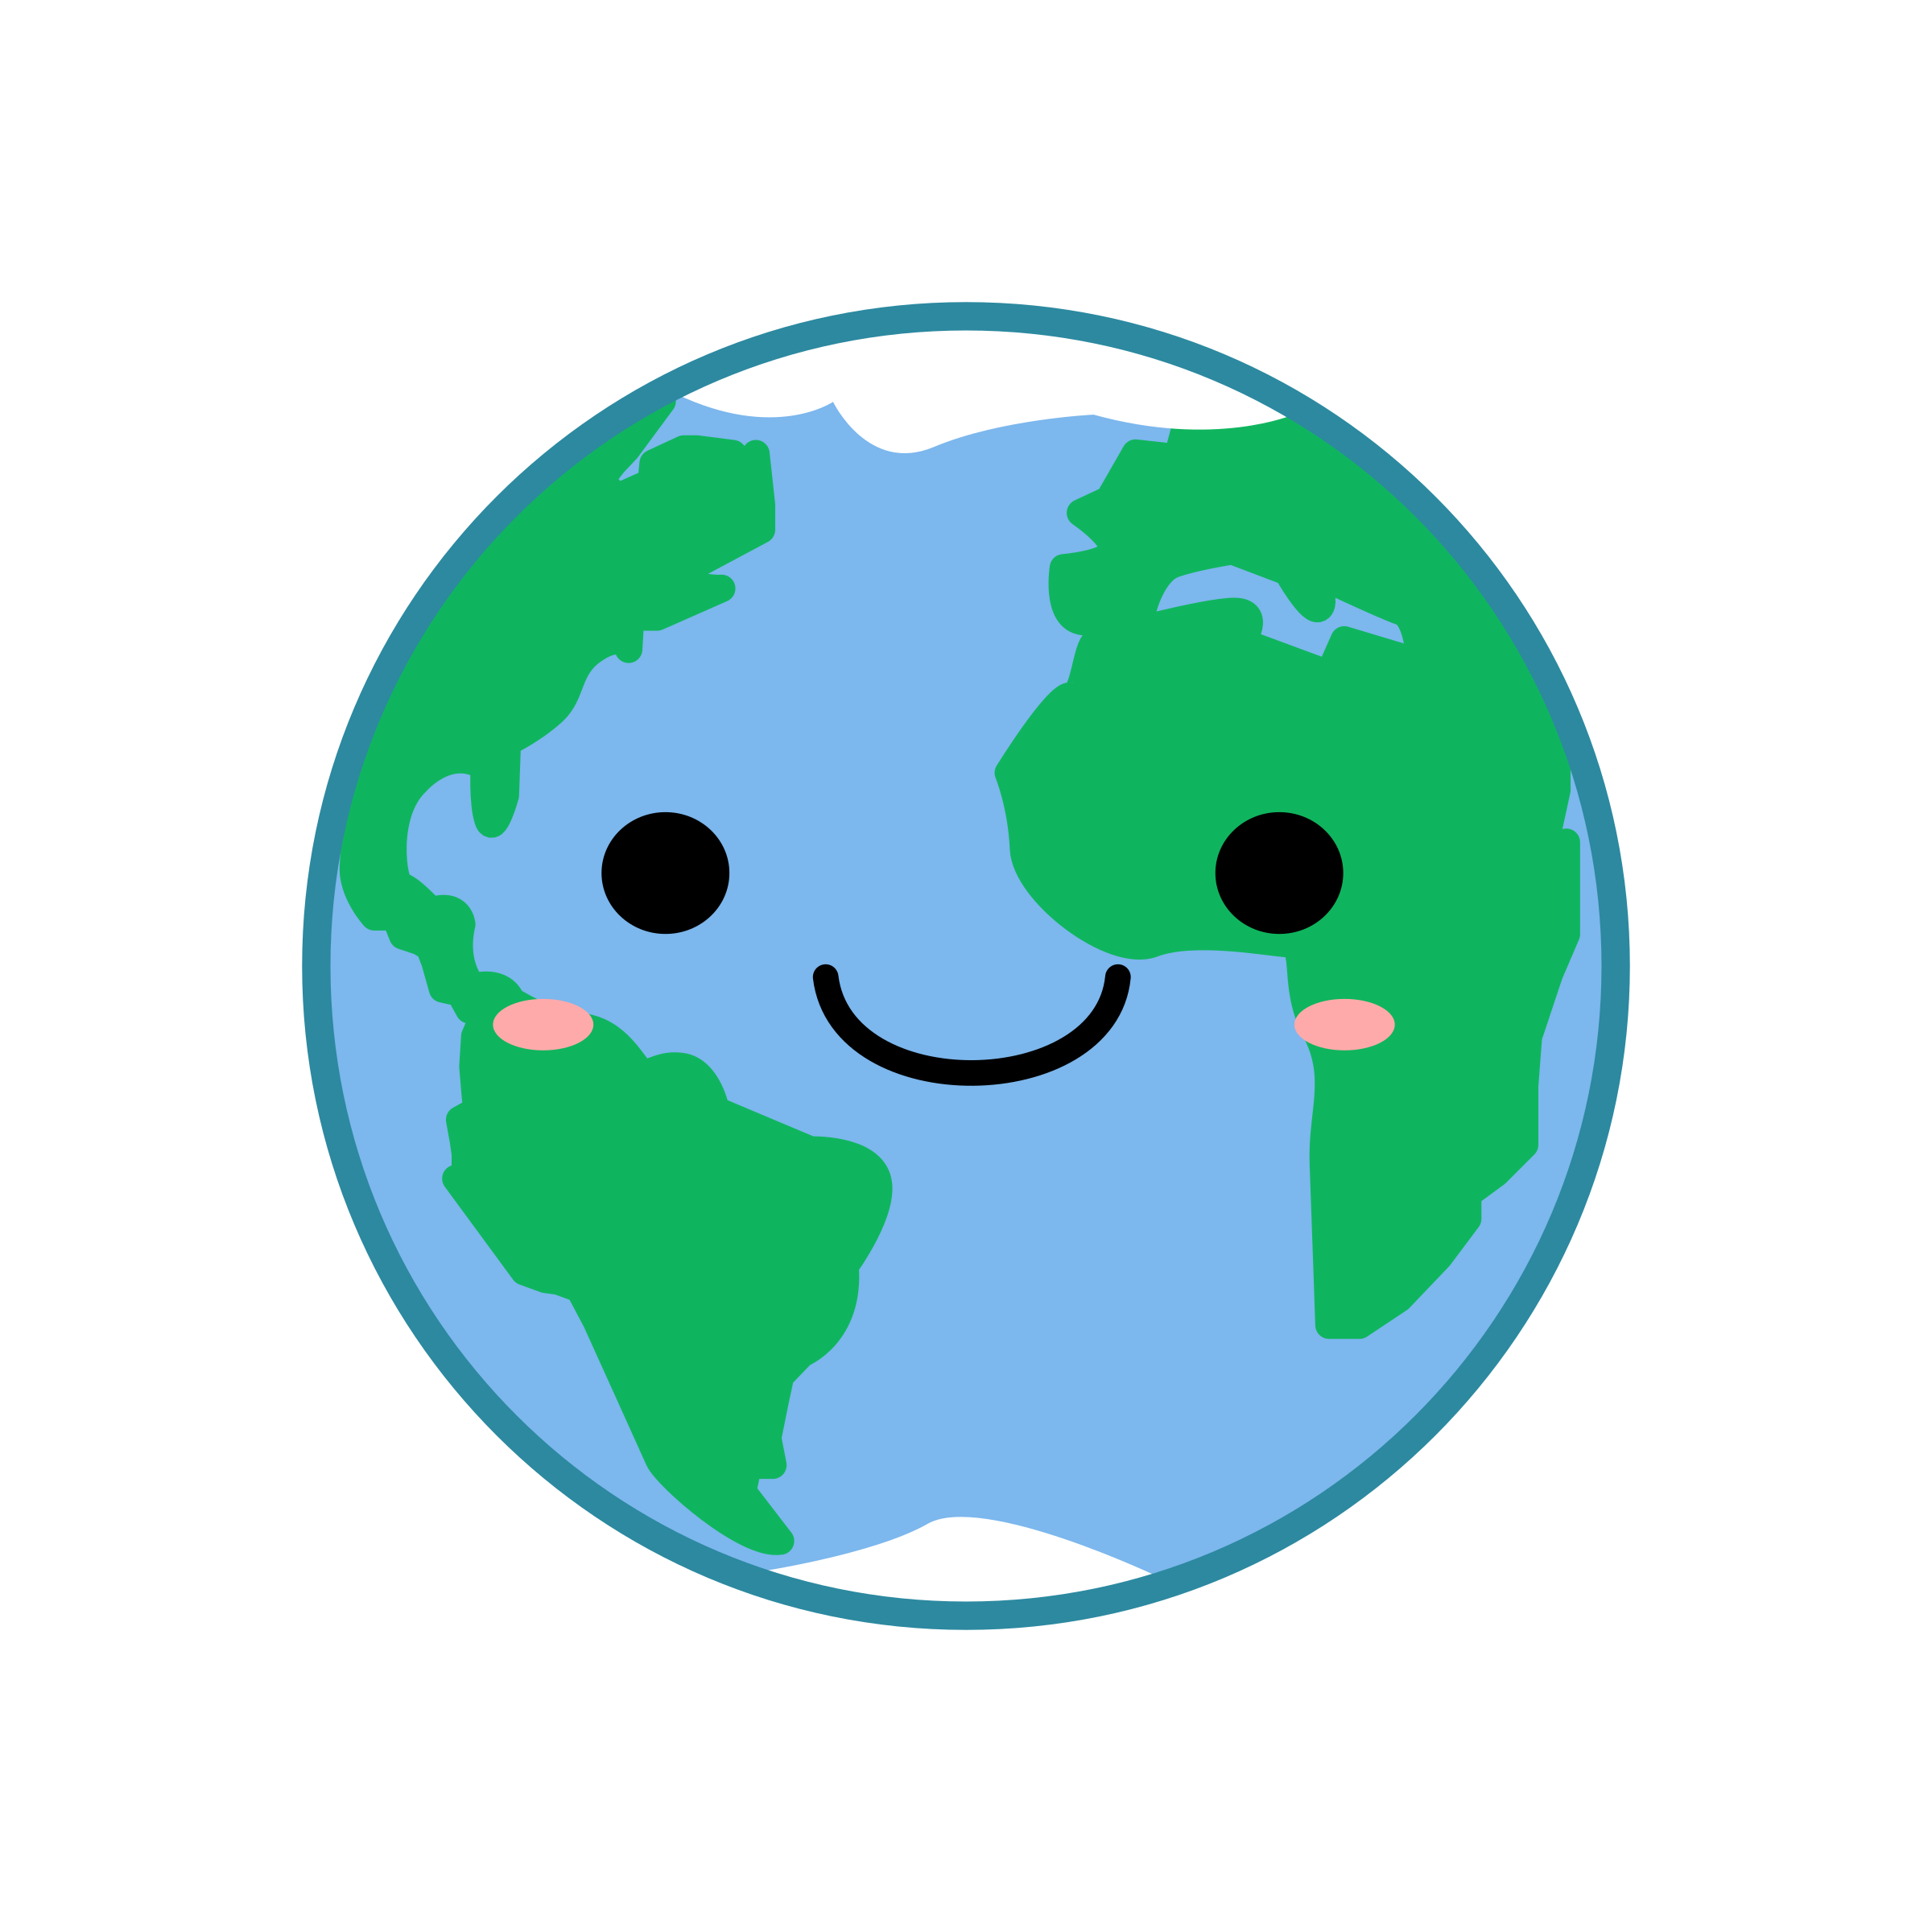 Clipart earth music. Kawaii icons png free